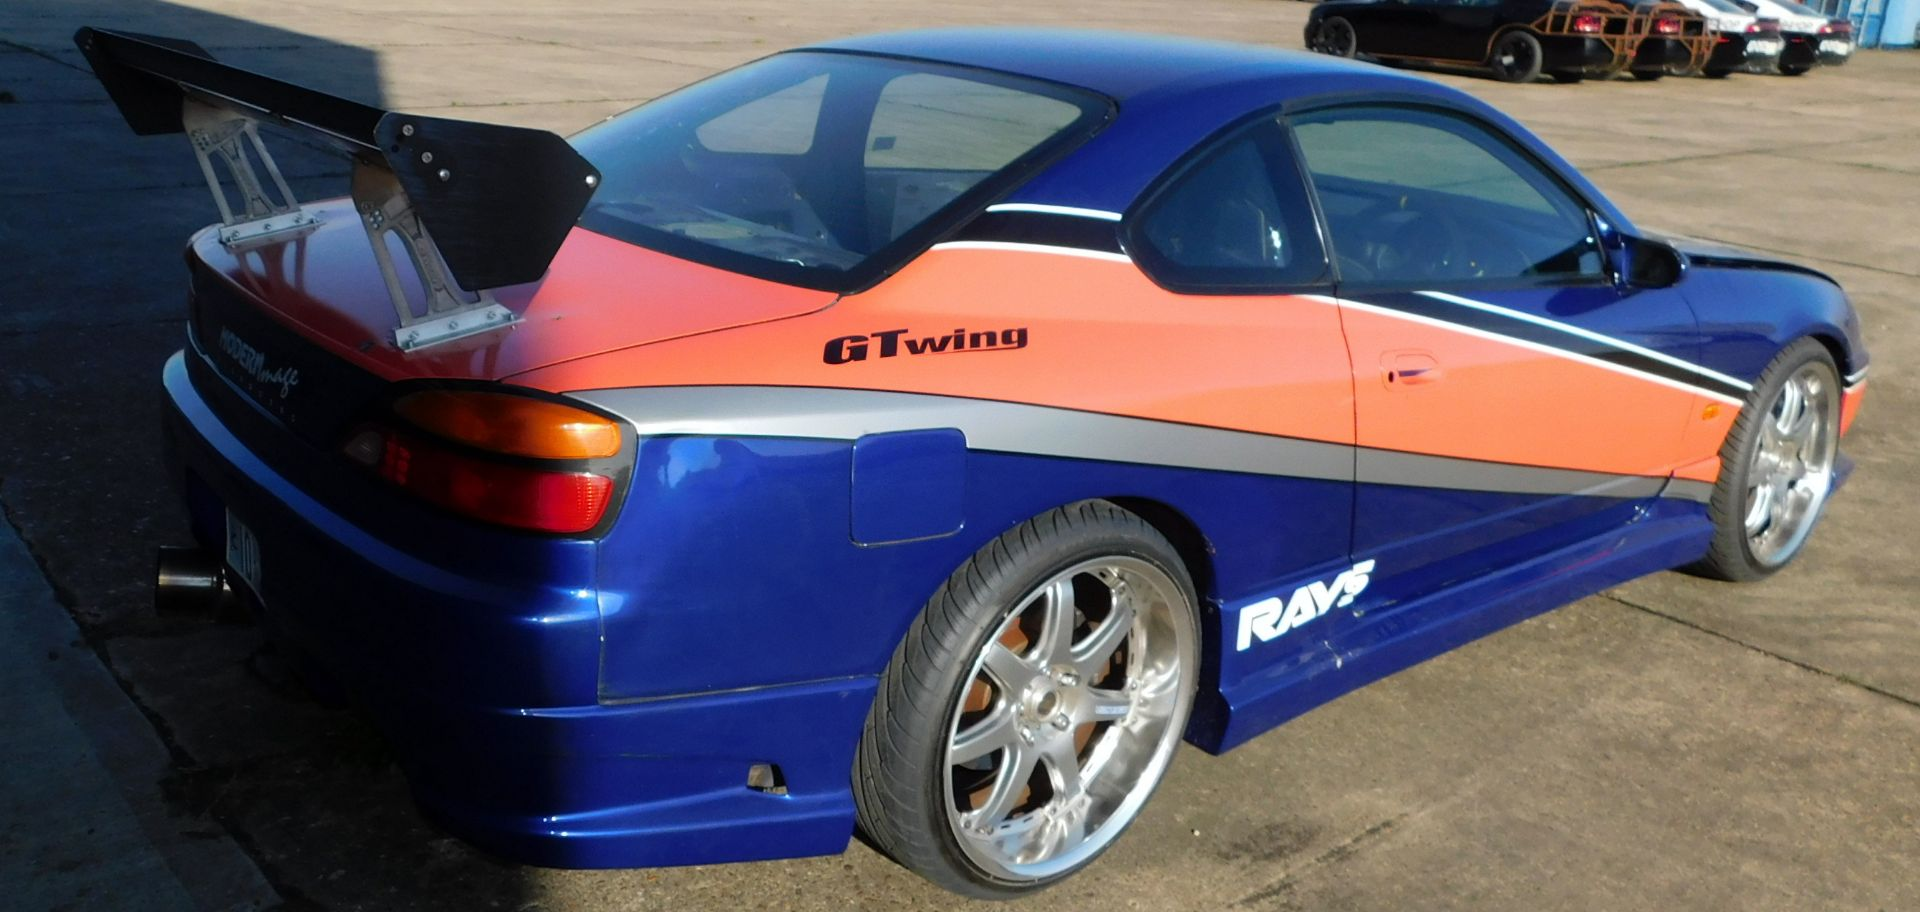 Nissan Silvia S15 2 door Coupe, LS3 V8 6.2 Litre Engine, Quaife 6 Speed Sequential Gearbox, - Image 6 of 12